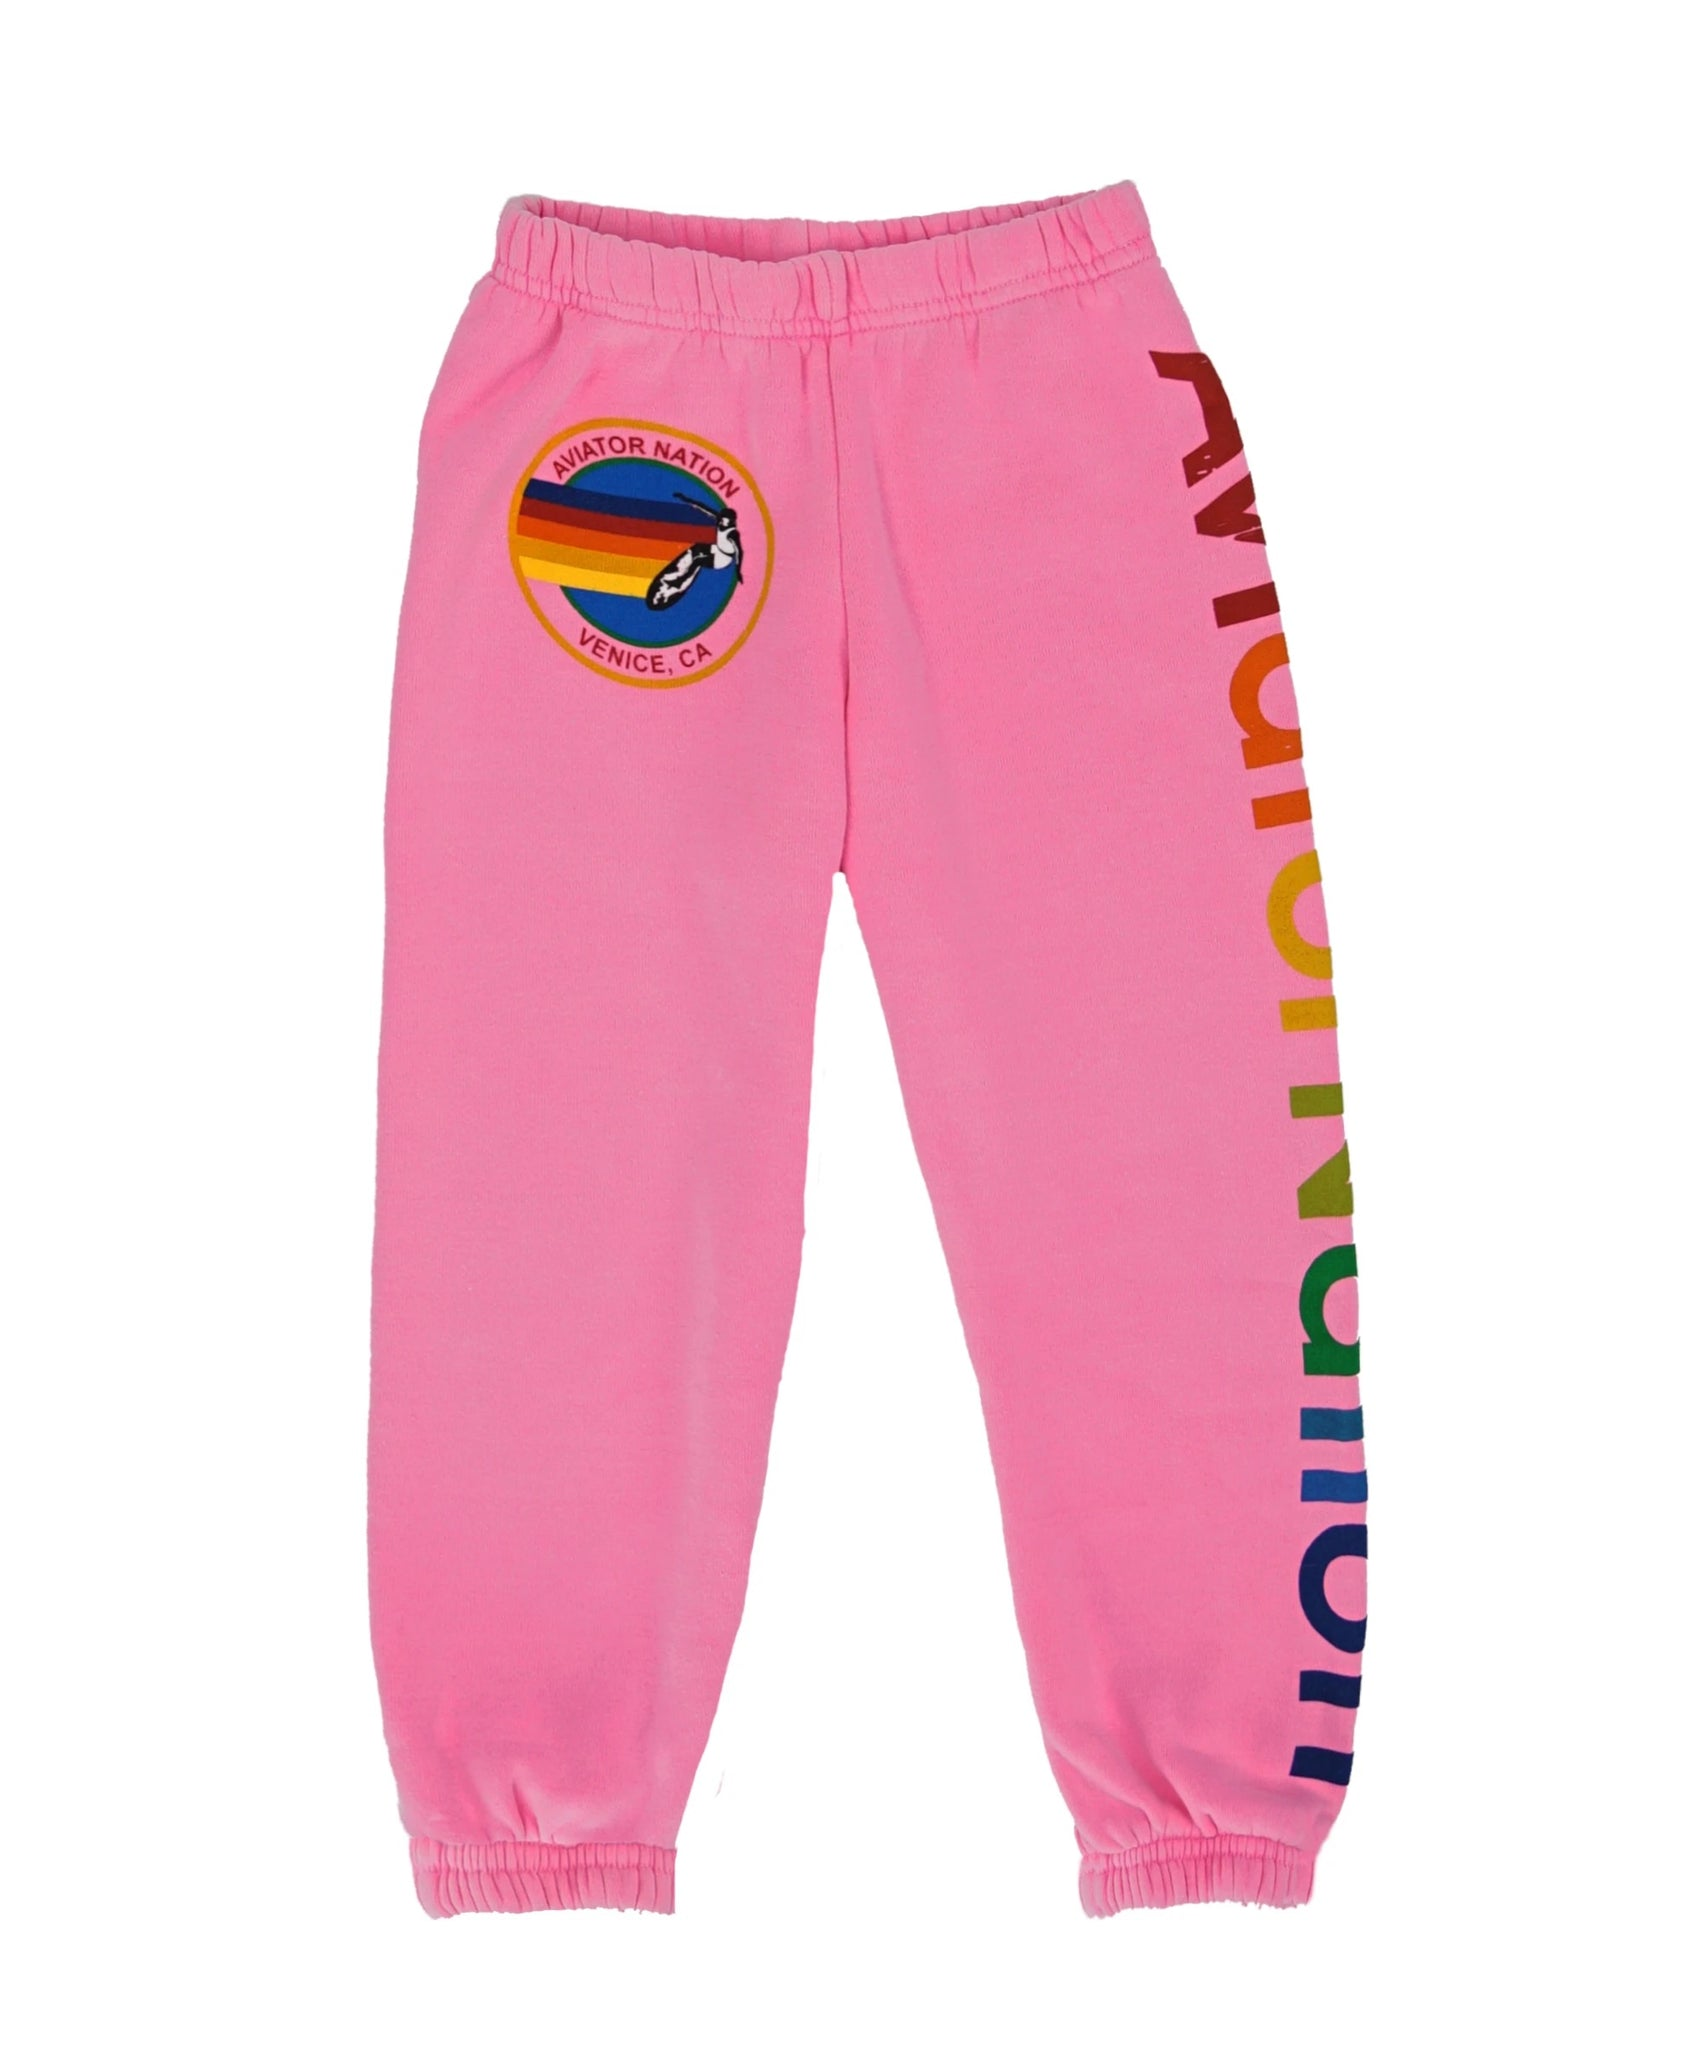 Aviator Nation - KID'S AVIATOR NATION SWEATPANTS - NEON PINK